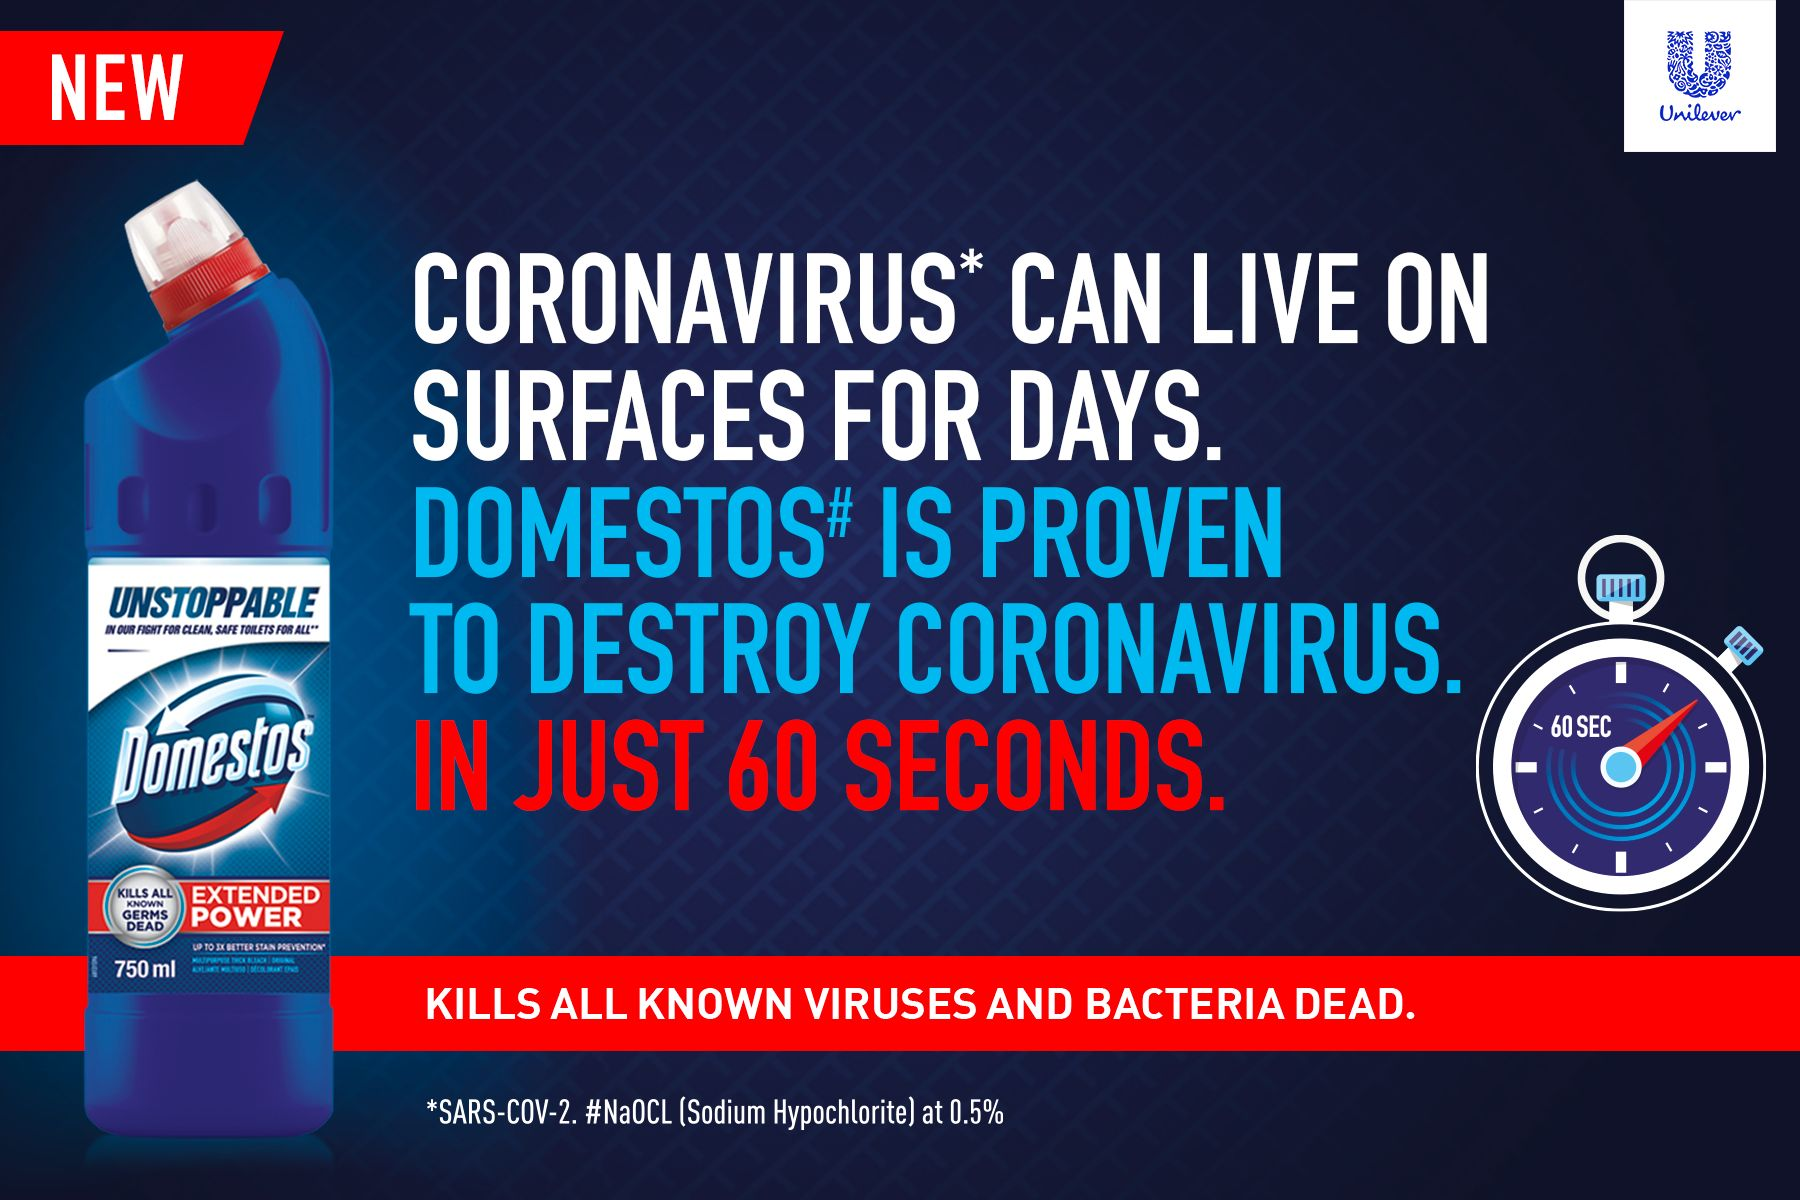 CORONAVIRUS* CAN LIVE 0N SURFACES FOR DAYS.  DOMESTOS IS PROVEN TO DESTROY CORONAVIRUS IN JUST 60 SECONDS. Image of Domestos pack shot with dark blue background.